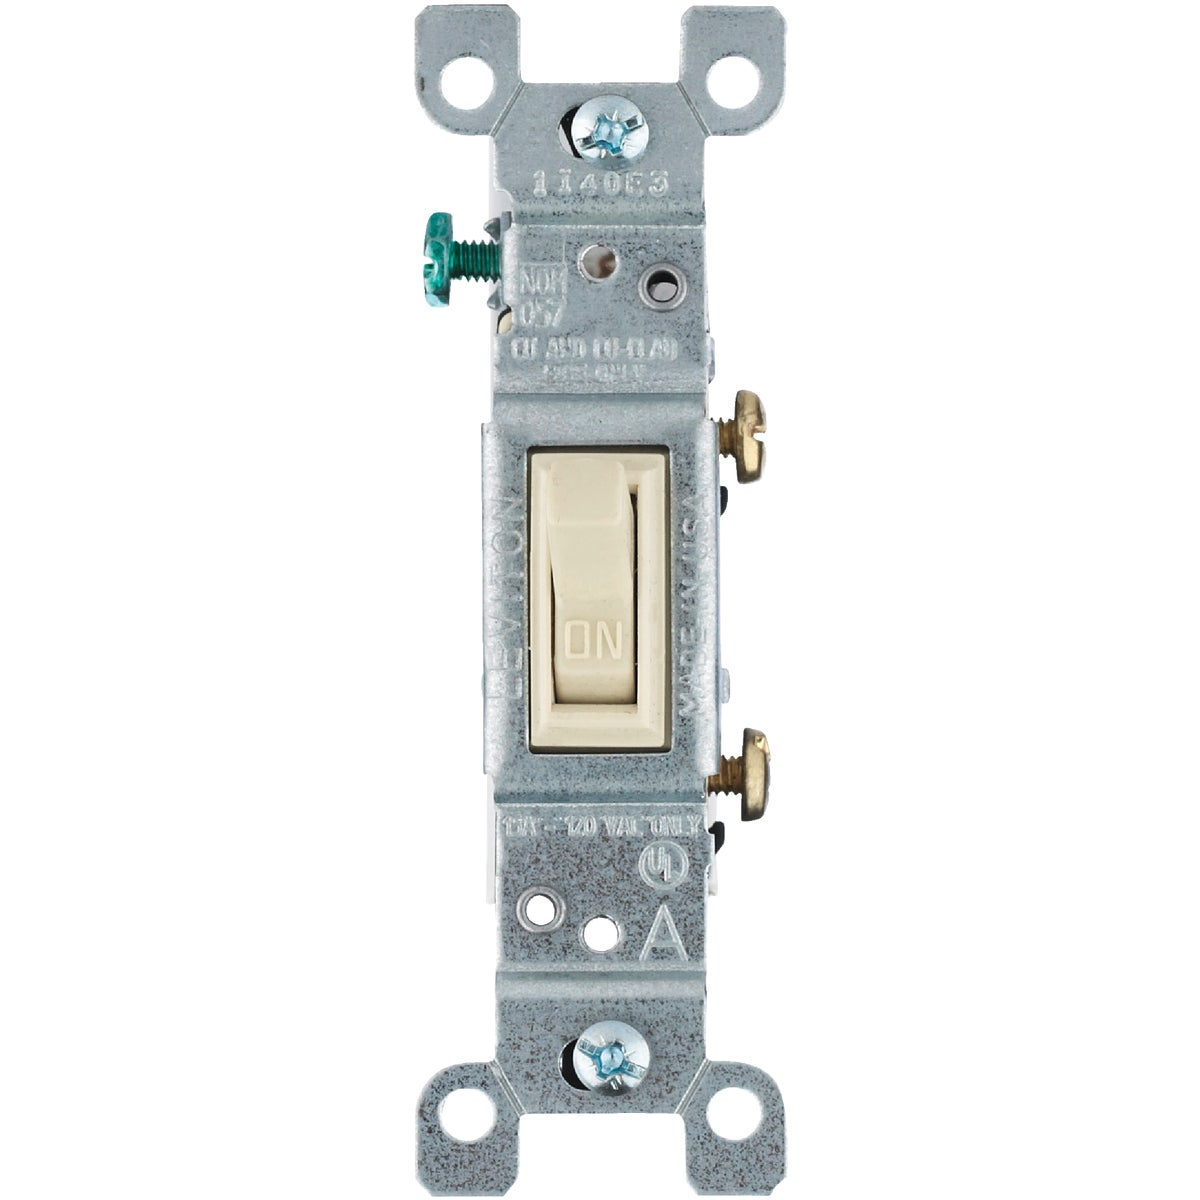 Ivory Ground Switch - 8771451-2I by Leviton Mfg Co